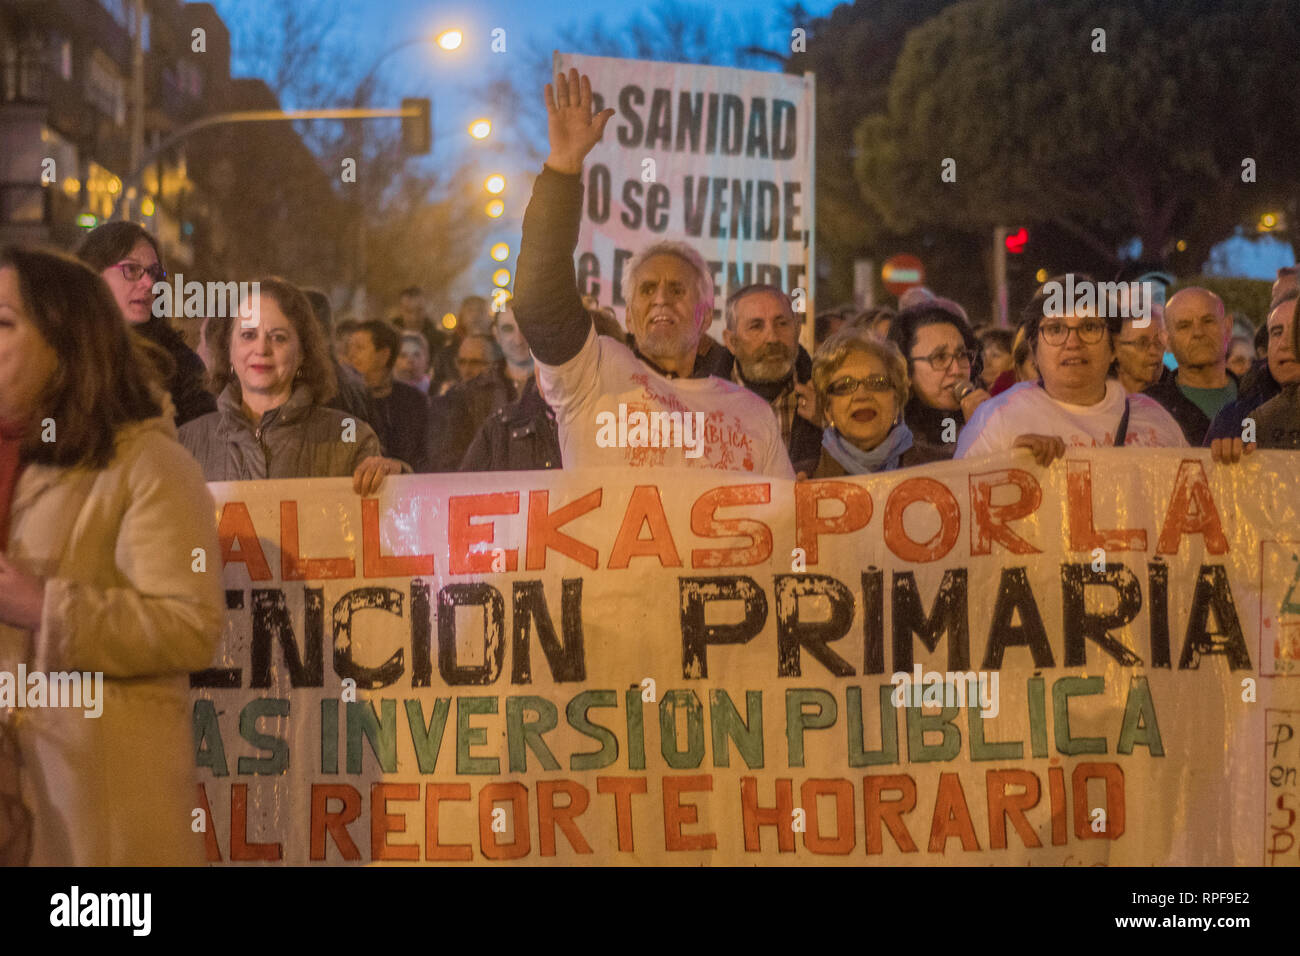 Madrid, Spain. 21st Feb 2019. March against cuts of public health staff by Spanish government. Less people will be in work in the public health sector. Protesters with placards rally against the decision of the government. Credit: Alberto Sibaja Ramírez/Alamy Live News Stock Photo